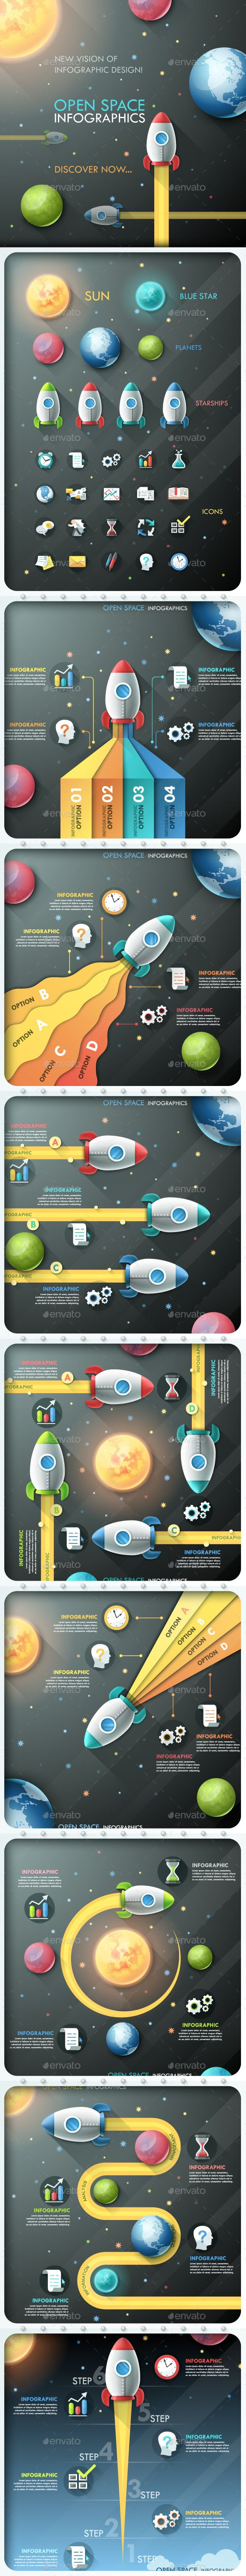 Open Space Infographics (Timeline, Photoshop PSD, JPG Image, Vector EPS, AI Illustrator, CS2, brochure, bundle, business, chart, collection, creative, data, design element, graphic, illustration, info, infograph, infographic, information, layout, modern, option, pack, planet, process, ribbon, set, shape, space, spaceship, startup, template, vector, visualization, web)